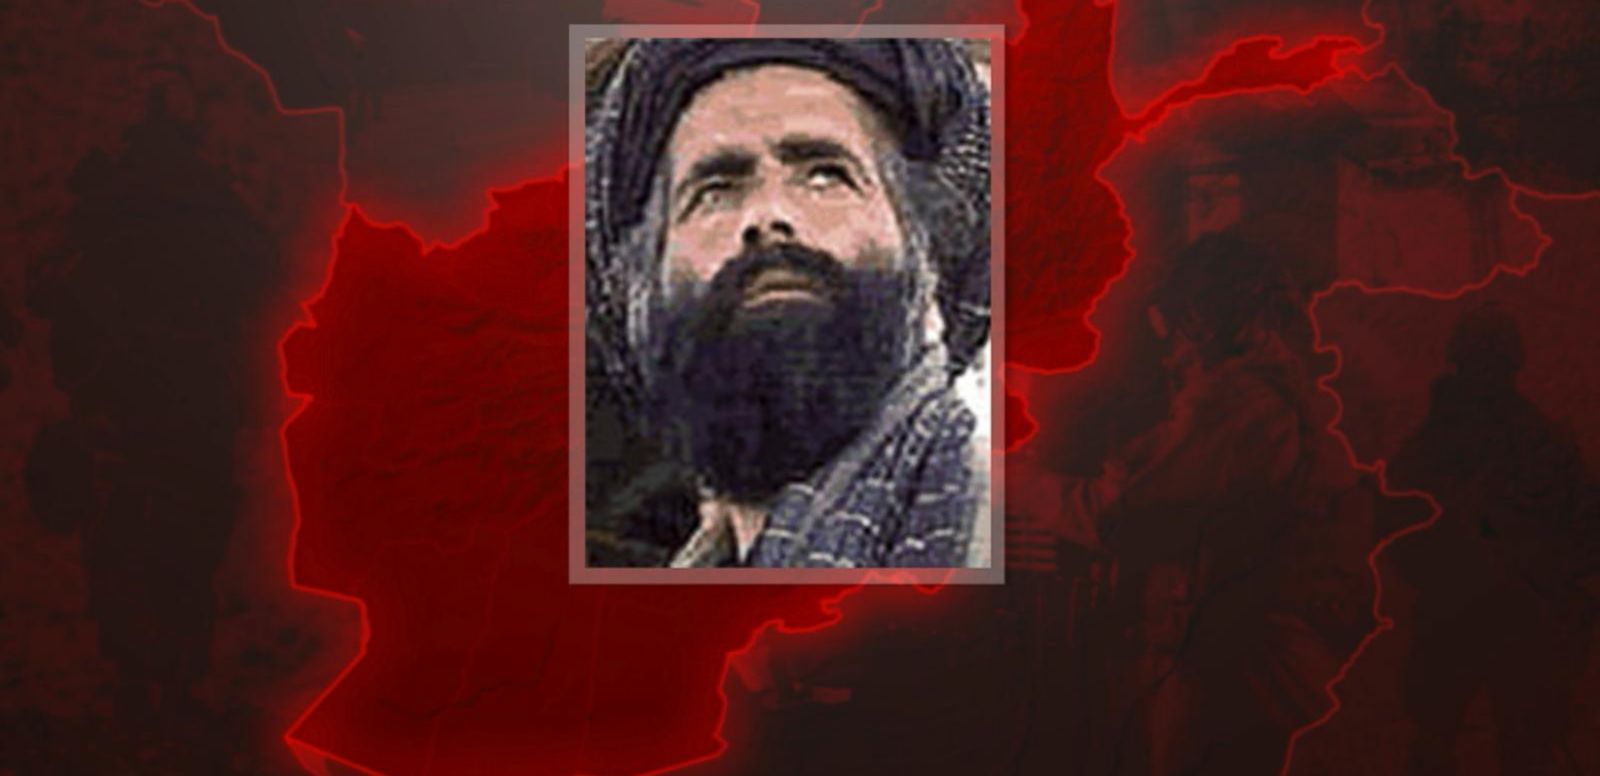 VIDEO: Afghan Officials: Taliban Leader Mullah Omar Dead